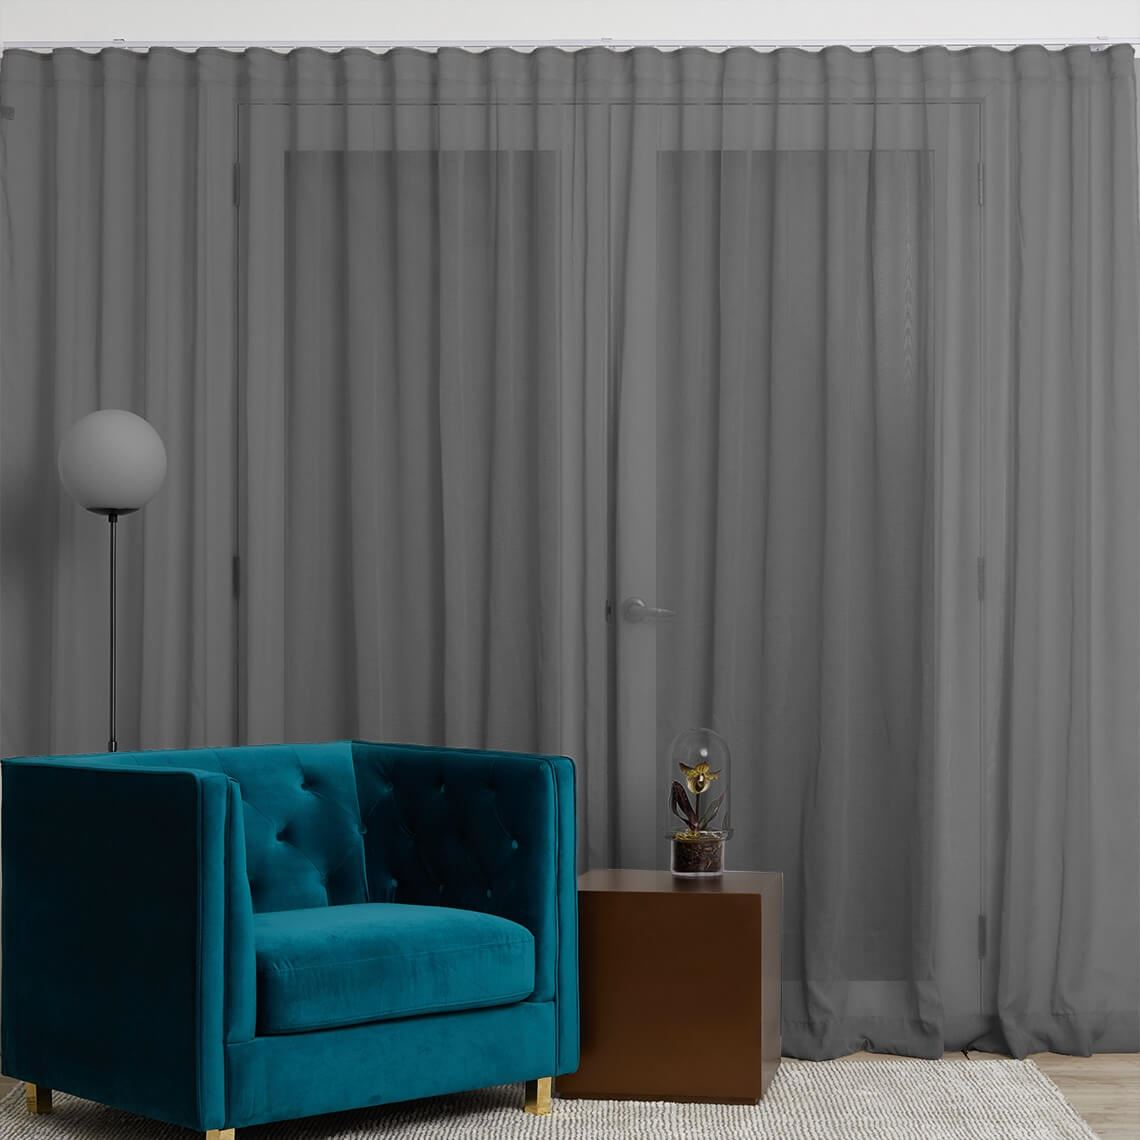 Mineral S-Fold Curtain Size W 315cm x D 1cm x H 280cm in Granite 100% Polyester Freedom by Freedom, a Curtains for sale on Style Sourcebook